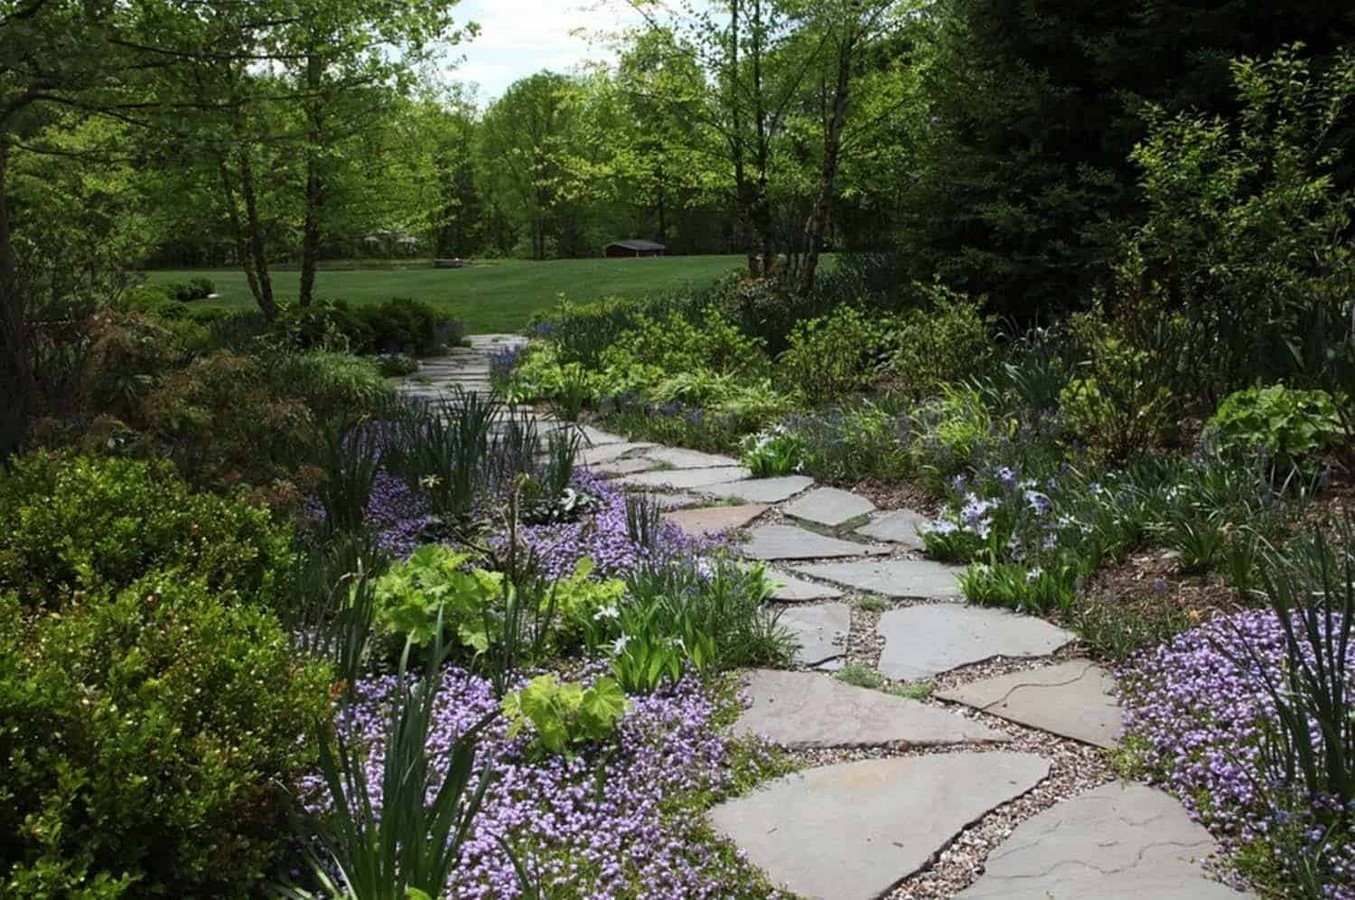 50 Ideas and Tips for Landscaping - Sheet4